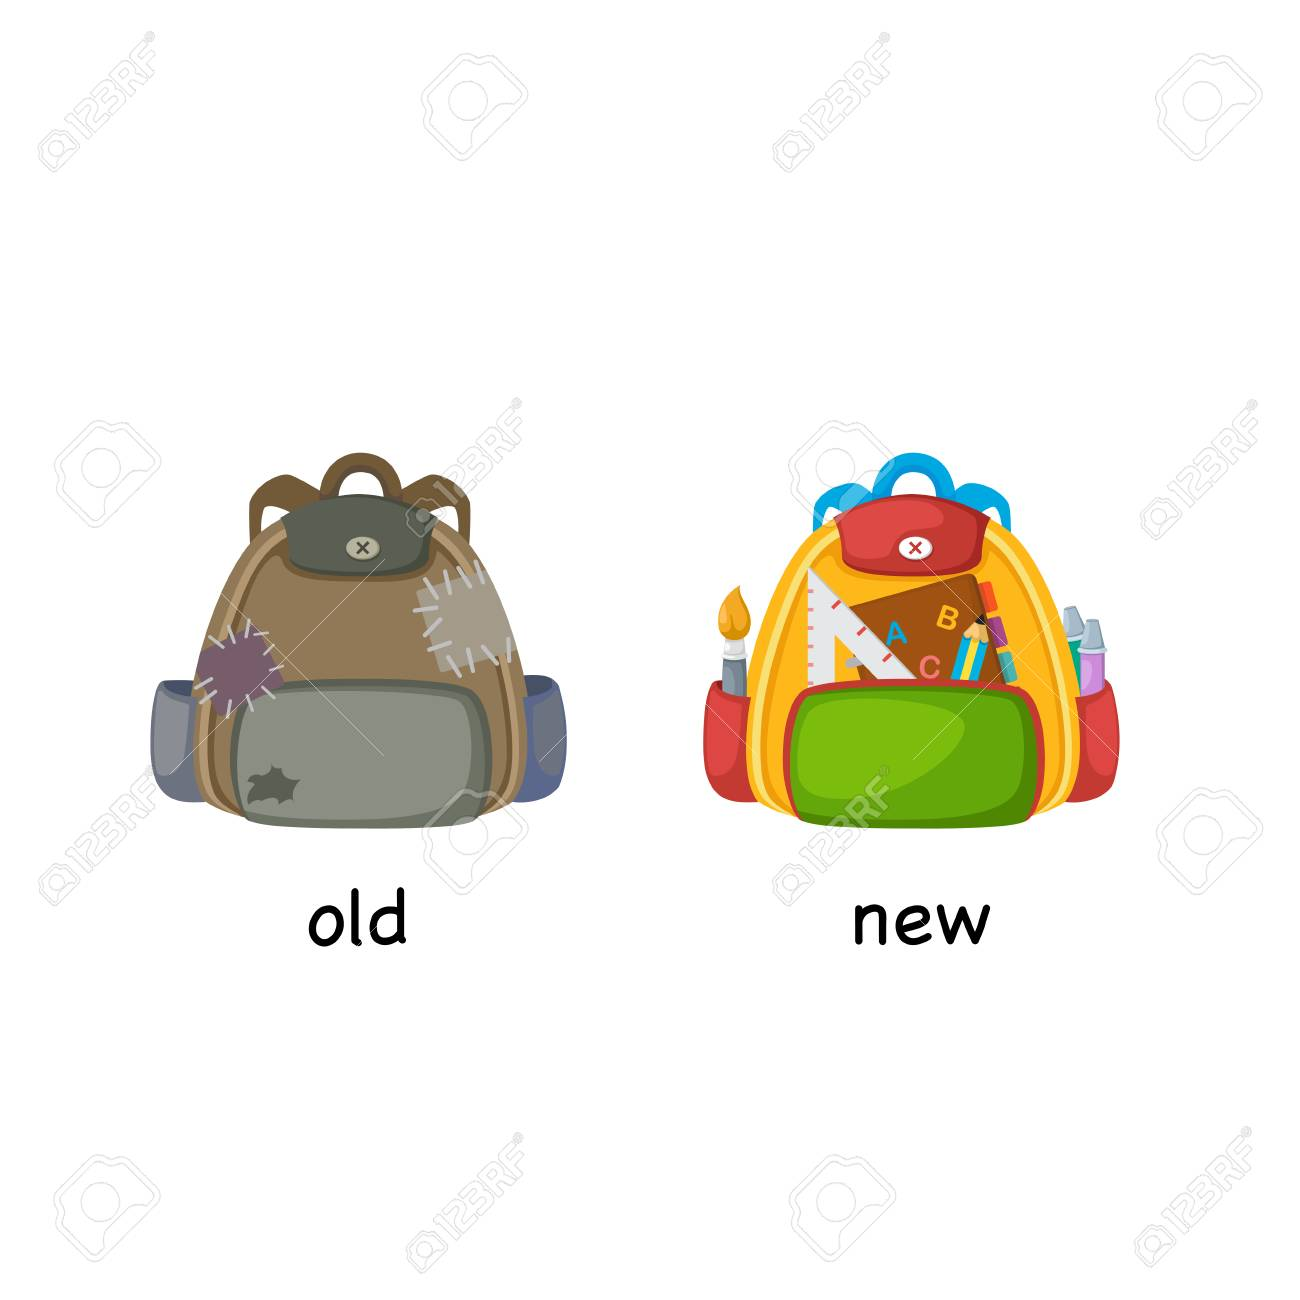 Old and New Clip Art